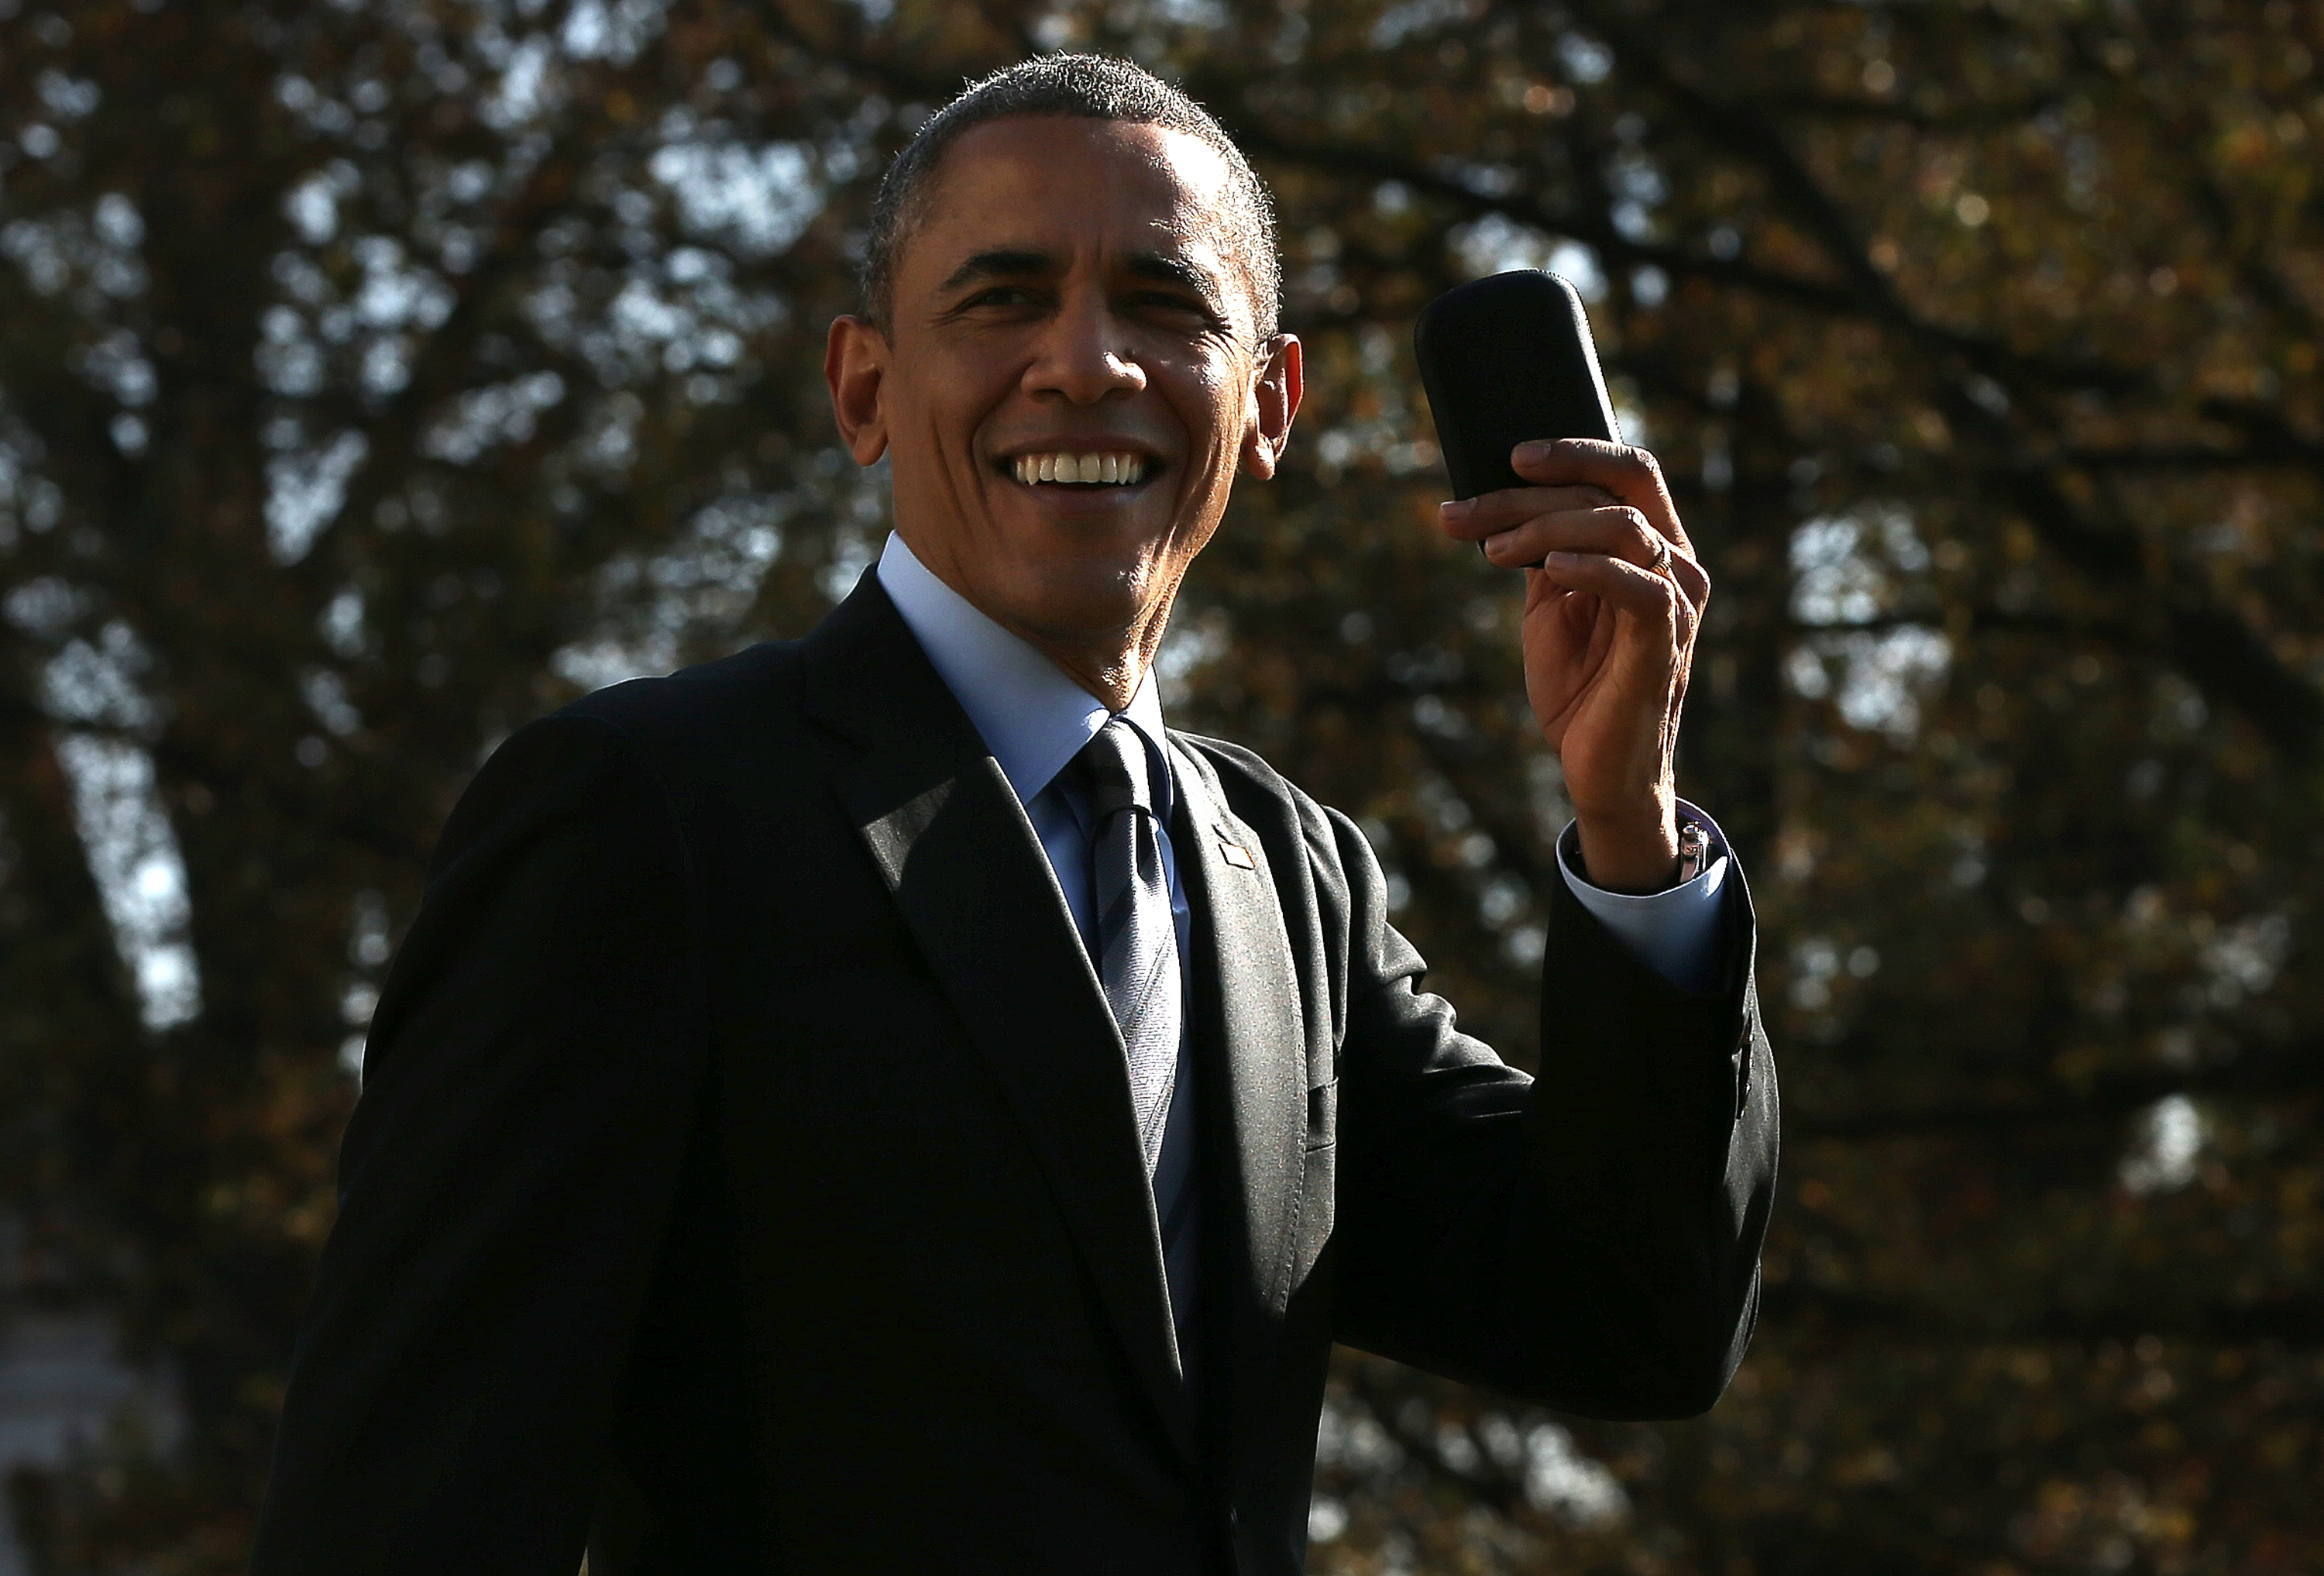 U.S. President Barack Obama holds up his Blackberry after he ran back into the White House after forgetting the mobile phone while departing for a domestic trip November 21, 2014 in Washington, DC.